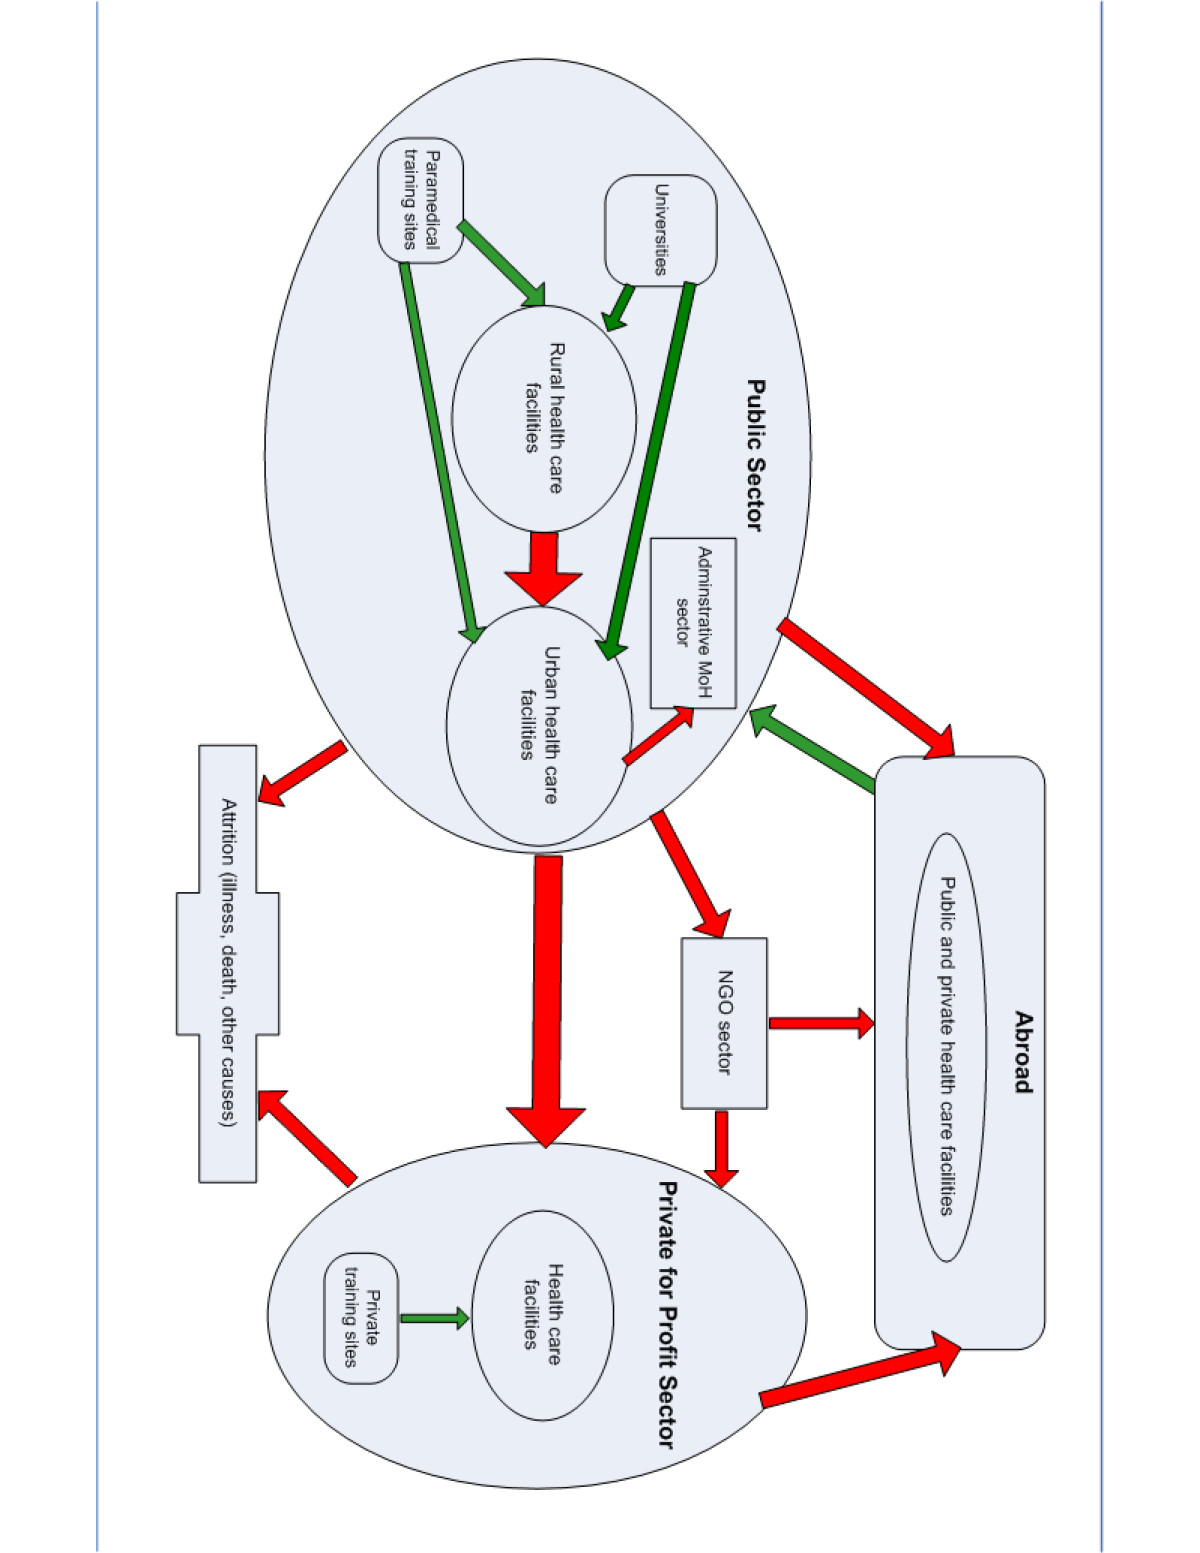 http://static-content.springer.com/image/art%3A10.1186%2F1478-4491-4-13/MediaObjects/12960_2005_Article_53_Fig1_HTML.jpg